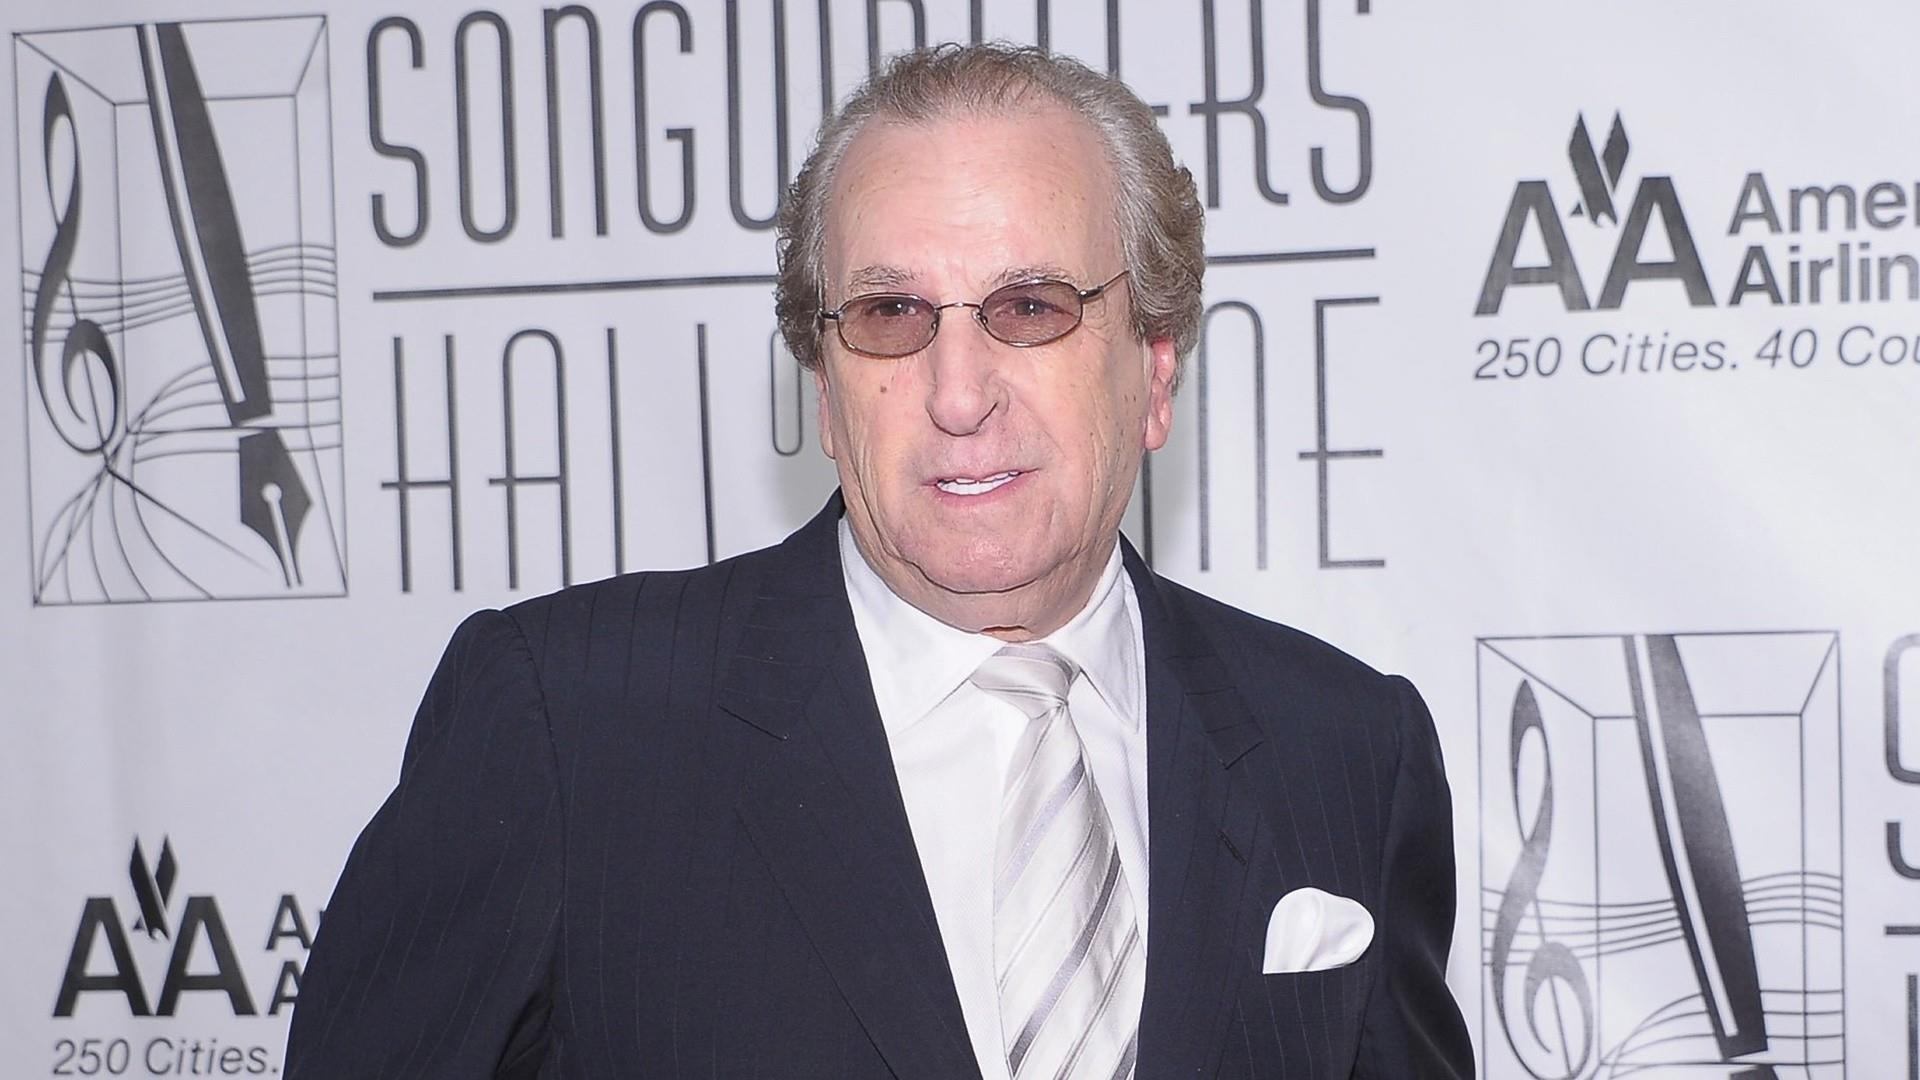 Danny Aiello, 'Do The Right Thing' and 'Moonstruck' star, dies at 86